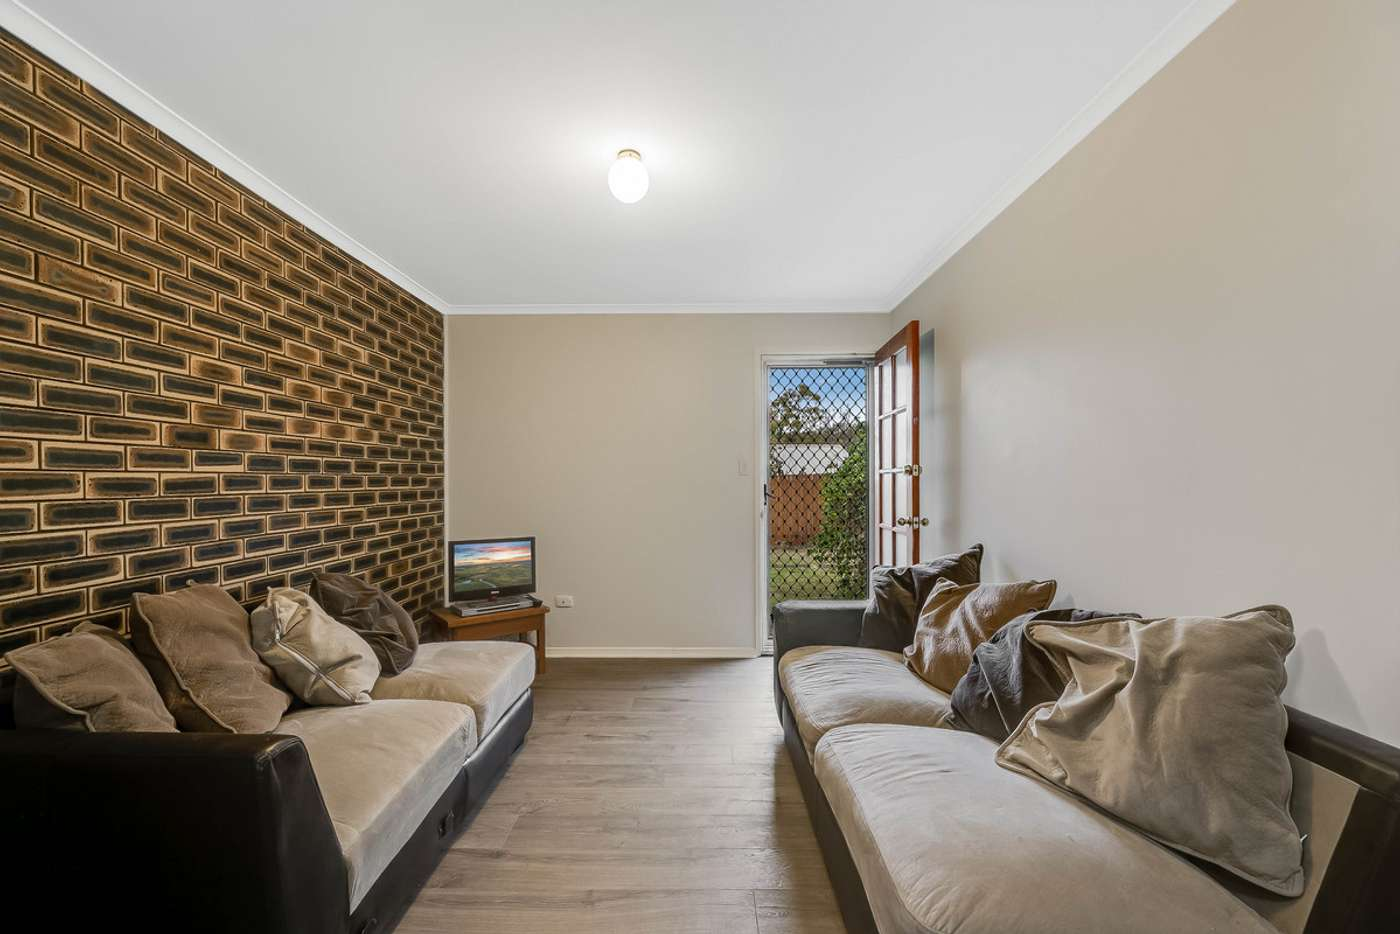 Fifth view of Homely unit listing, 2/6 Cossart Street, Centenary Heights QLD 4350